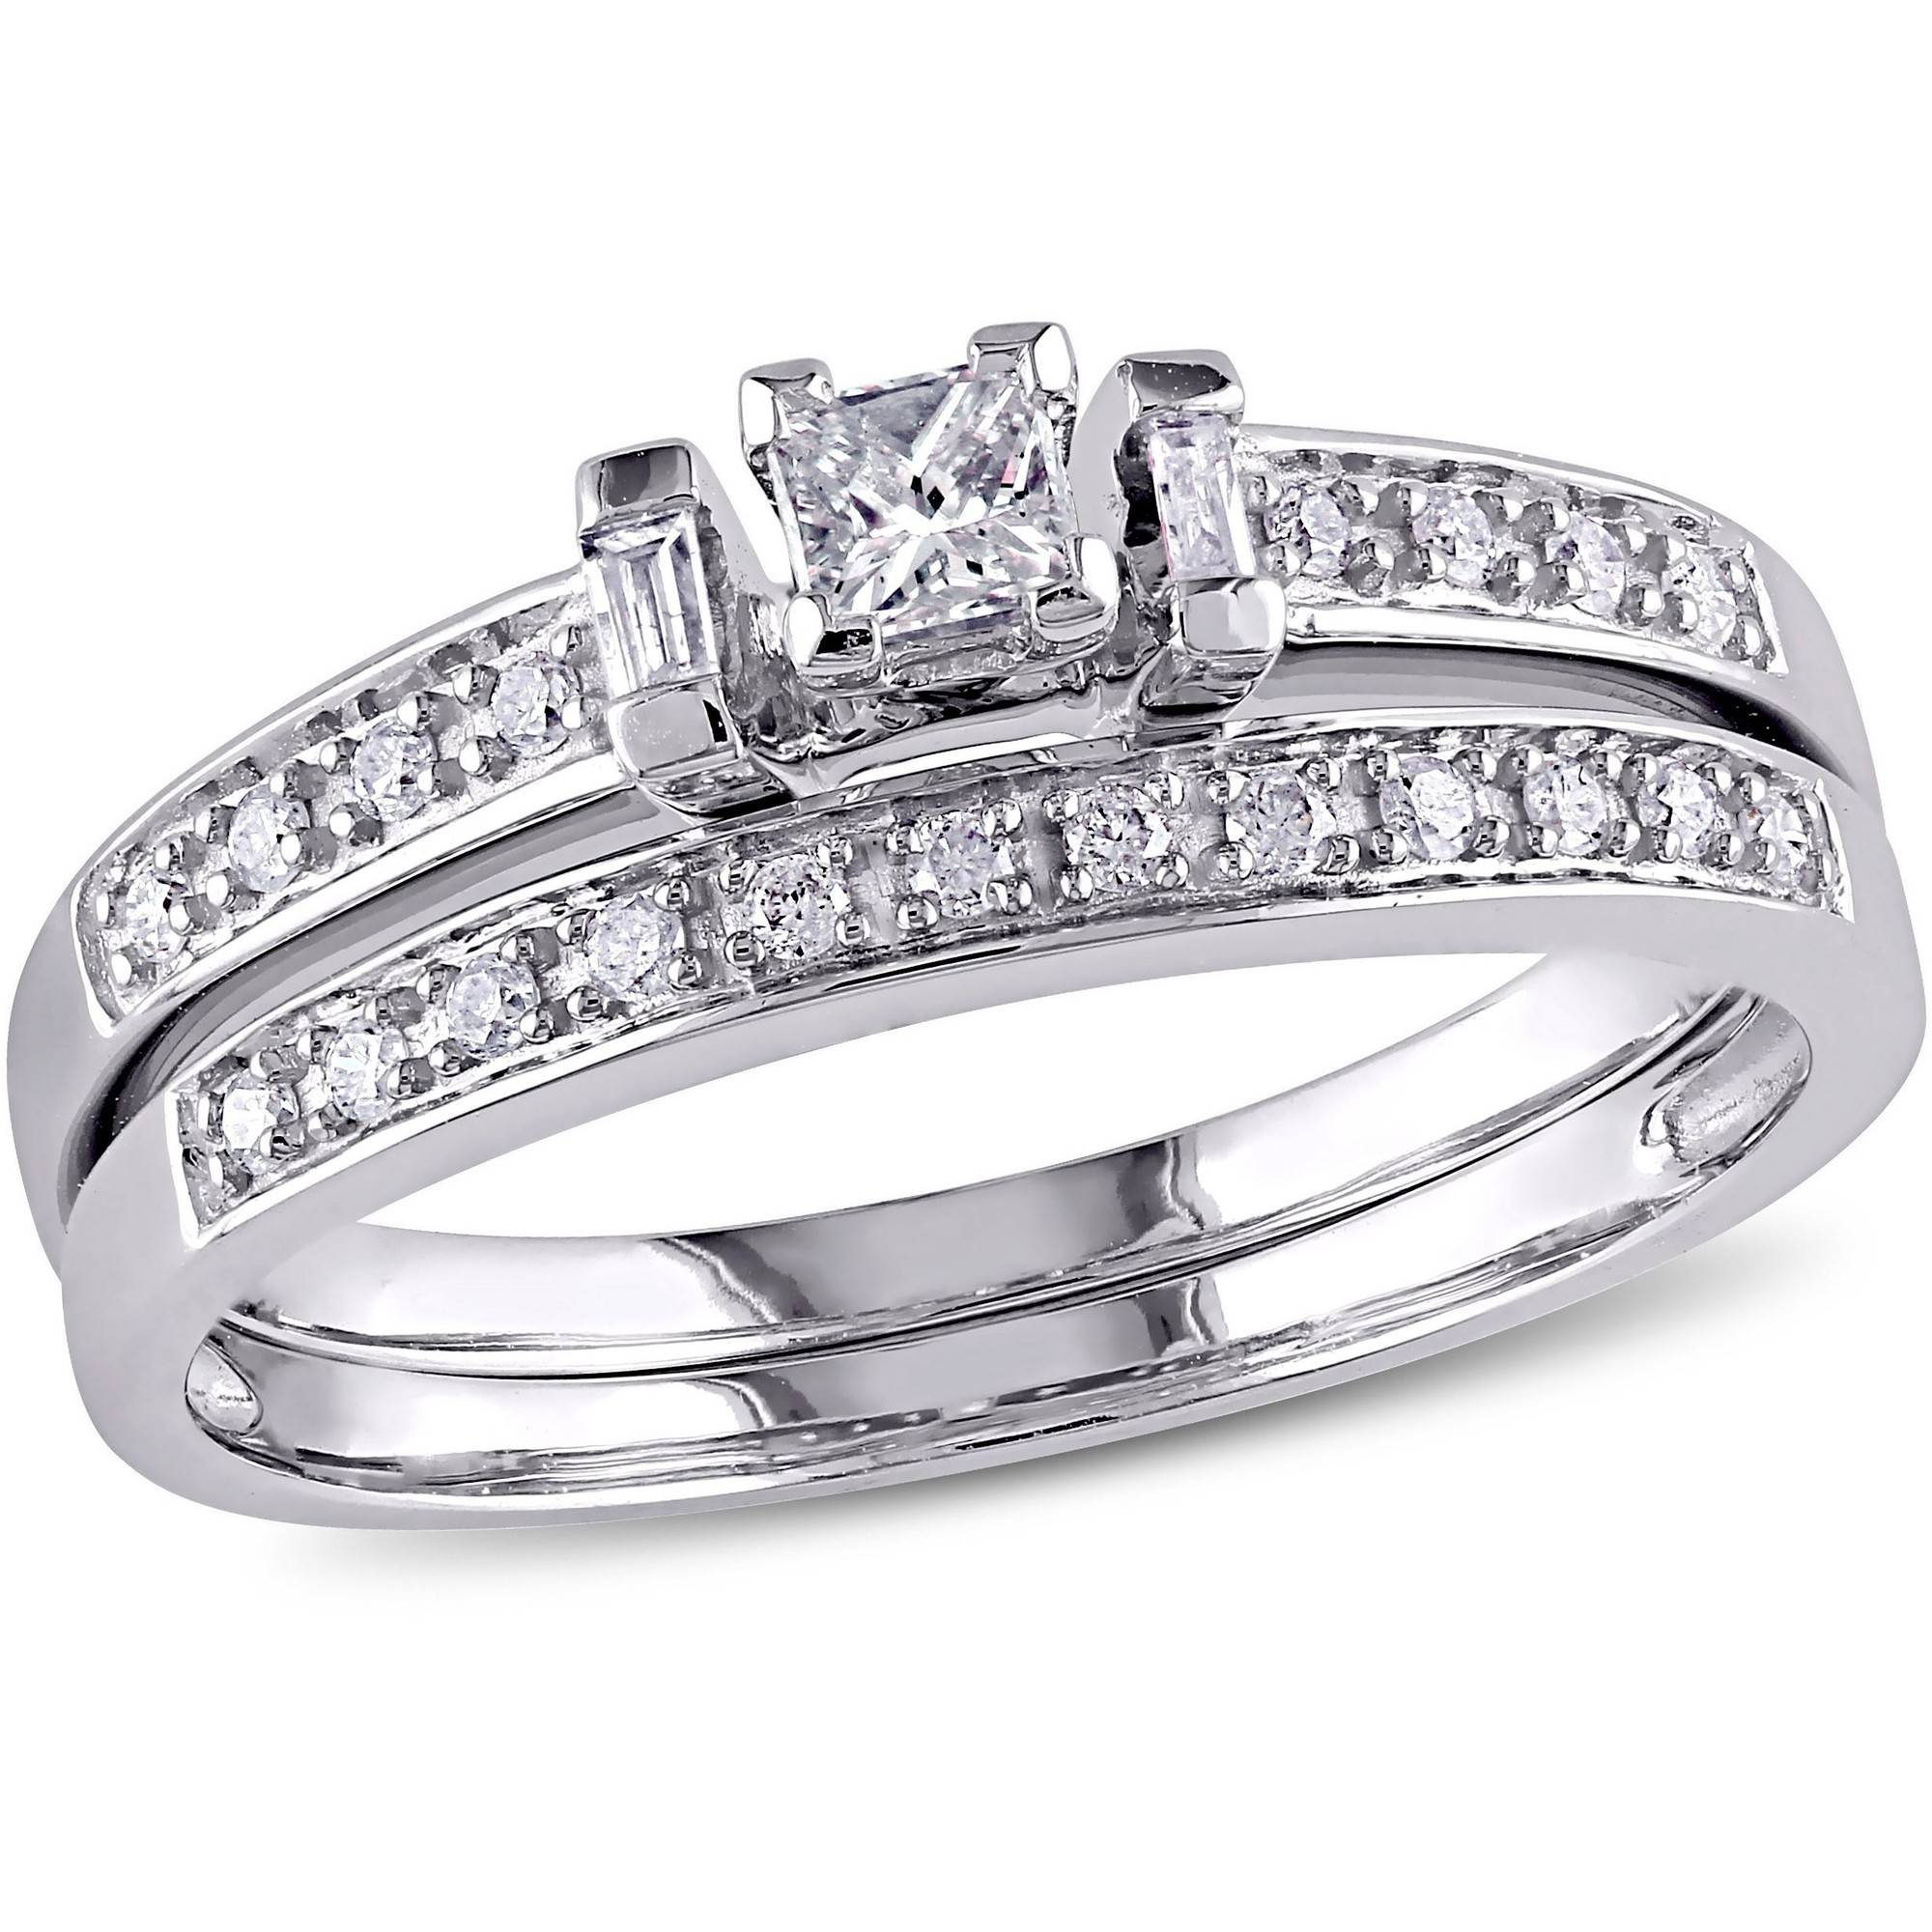 Miabella 1 3 Carat T W Princess Baguette and Round Cut Diamond